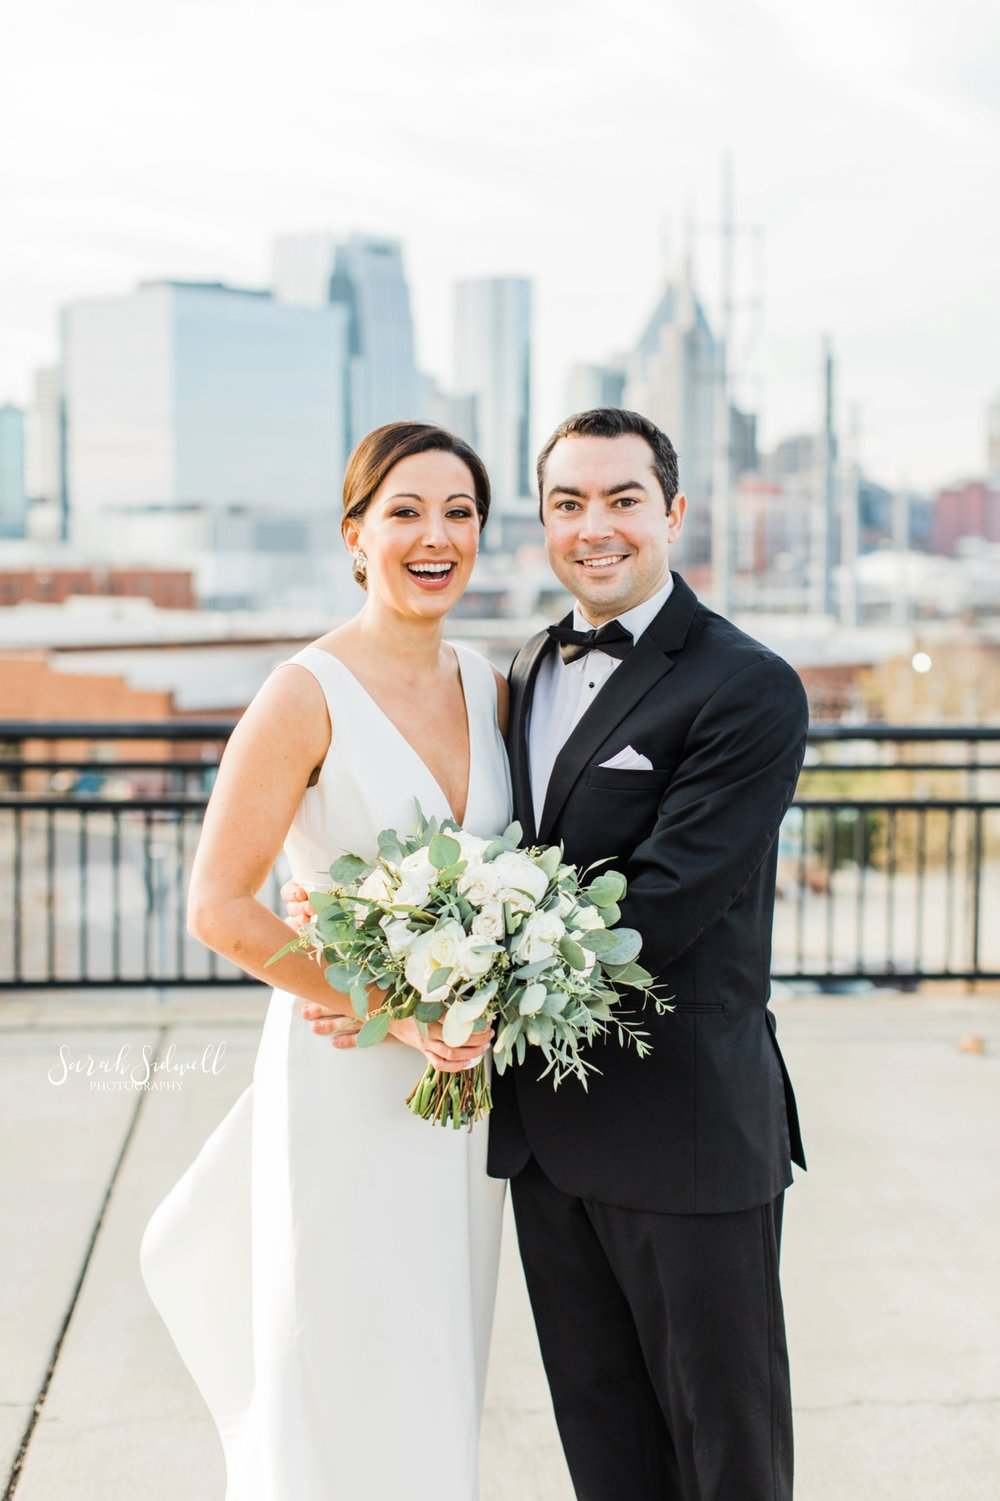 A couple pose for wedding photos | Sarah Sidwell Photography | The Bell Tower